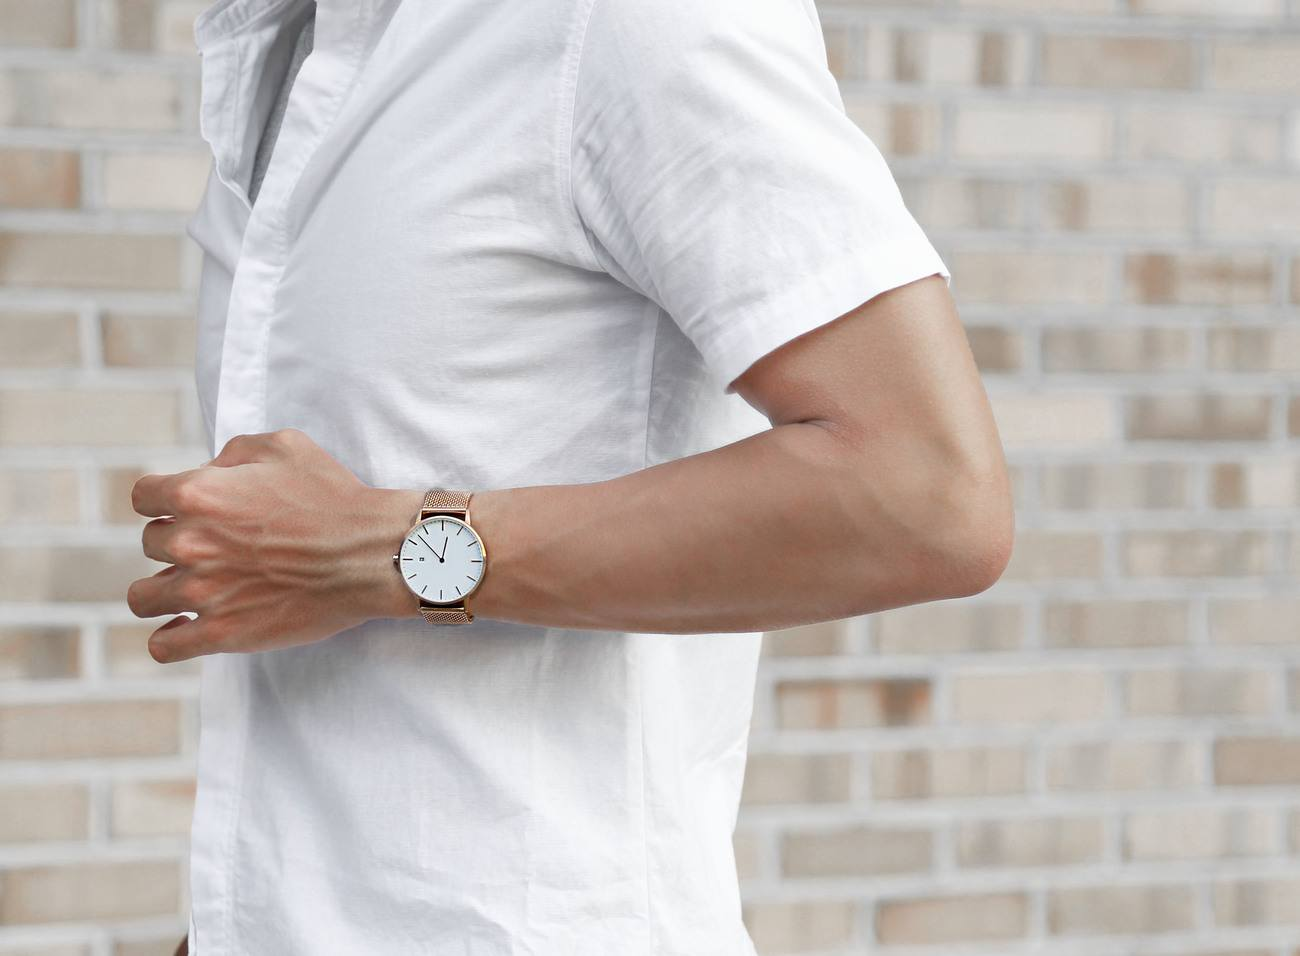 The Everyday Watch with Interchangeable Straps